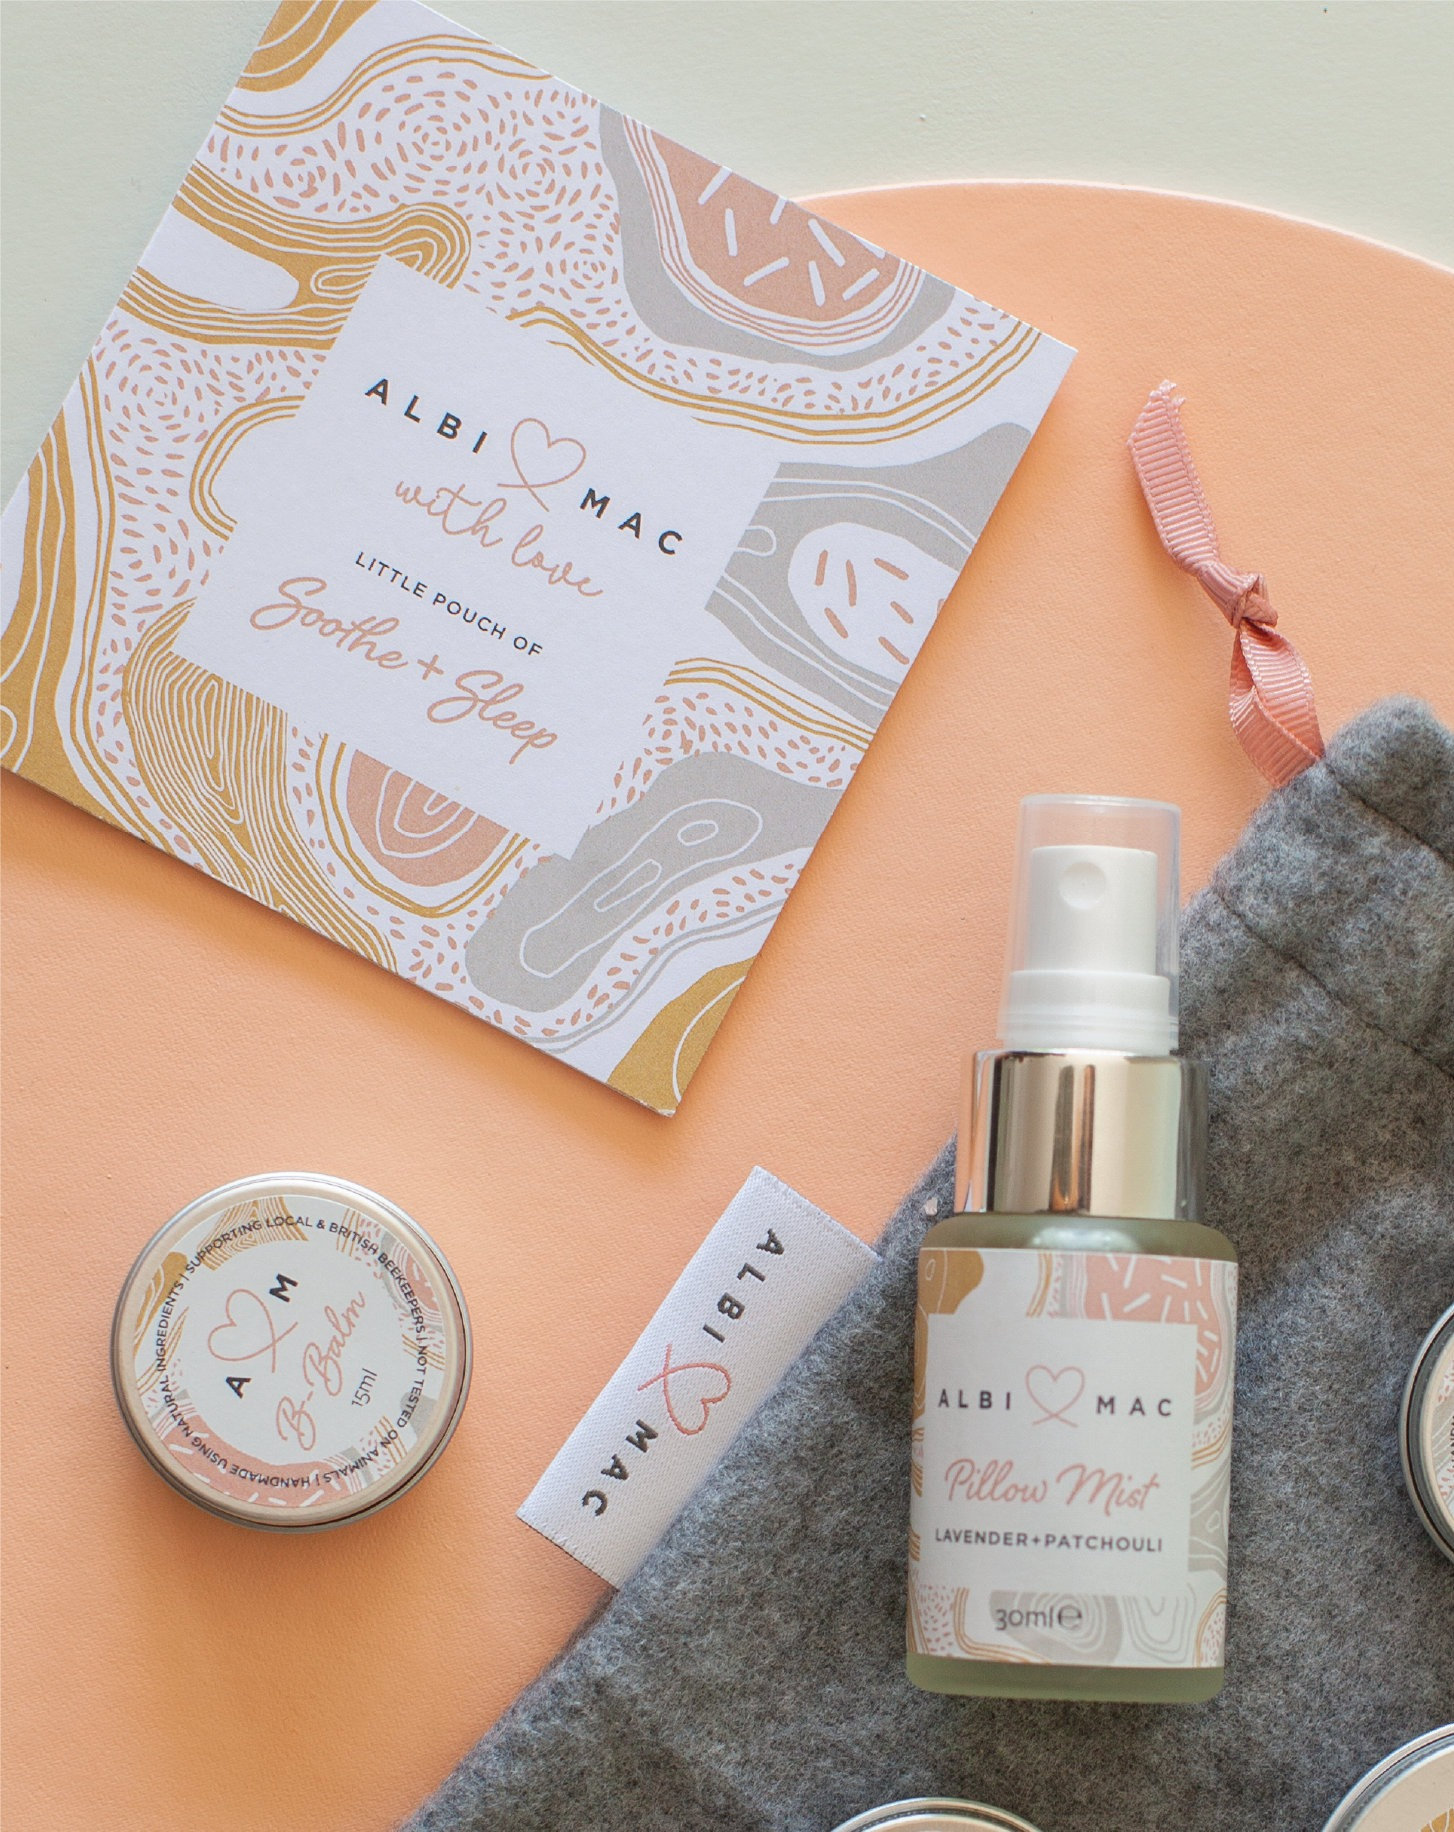 Balms and pillow mist in a £100 gift box